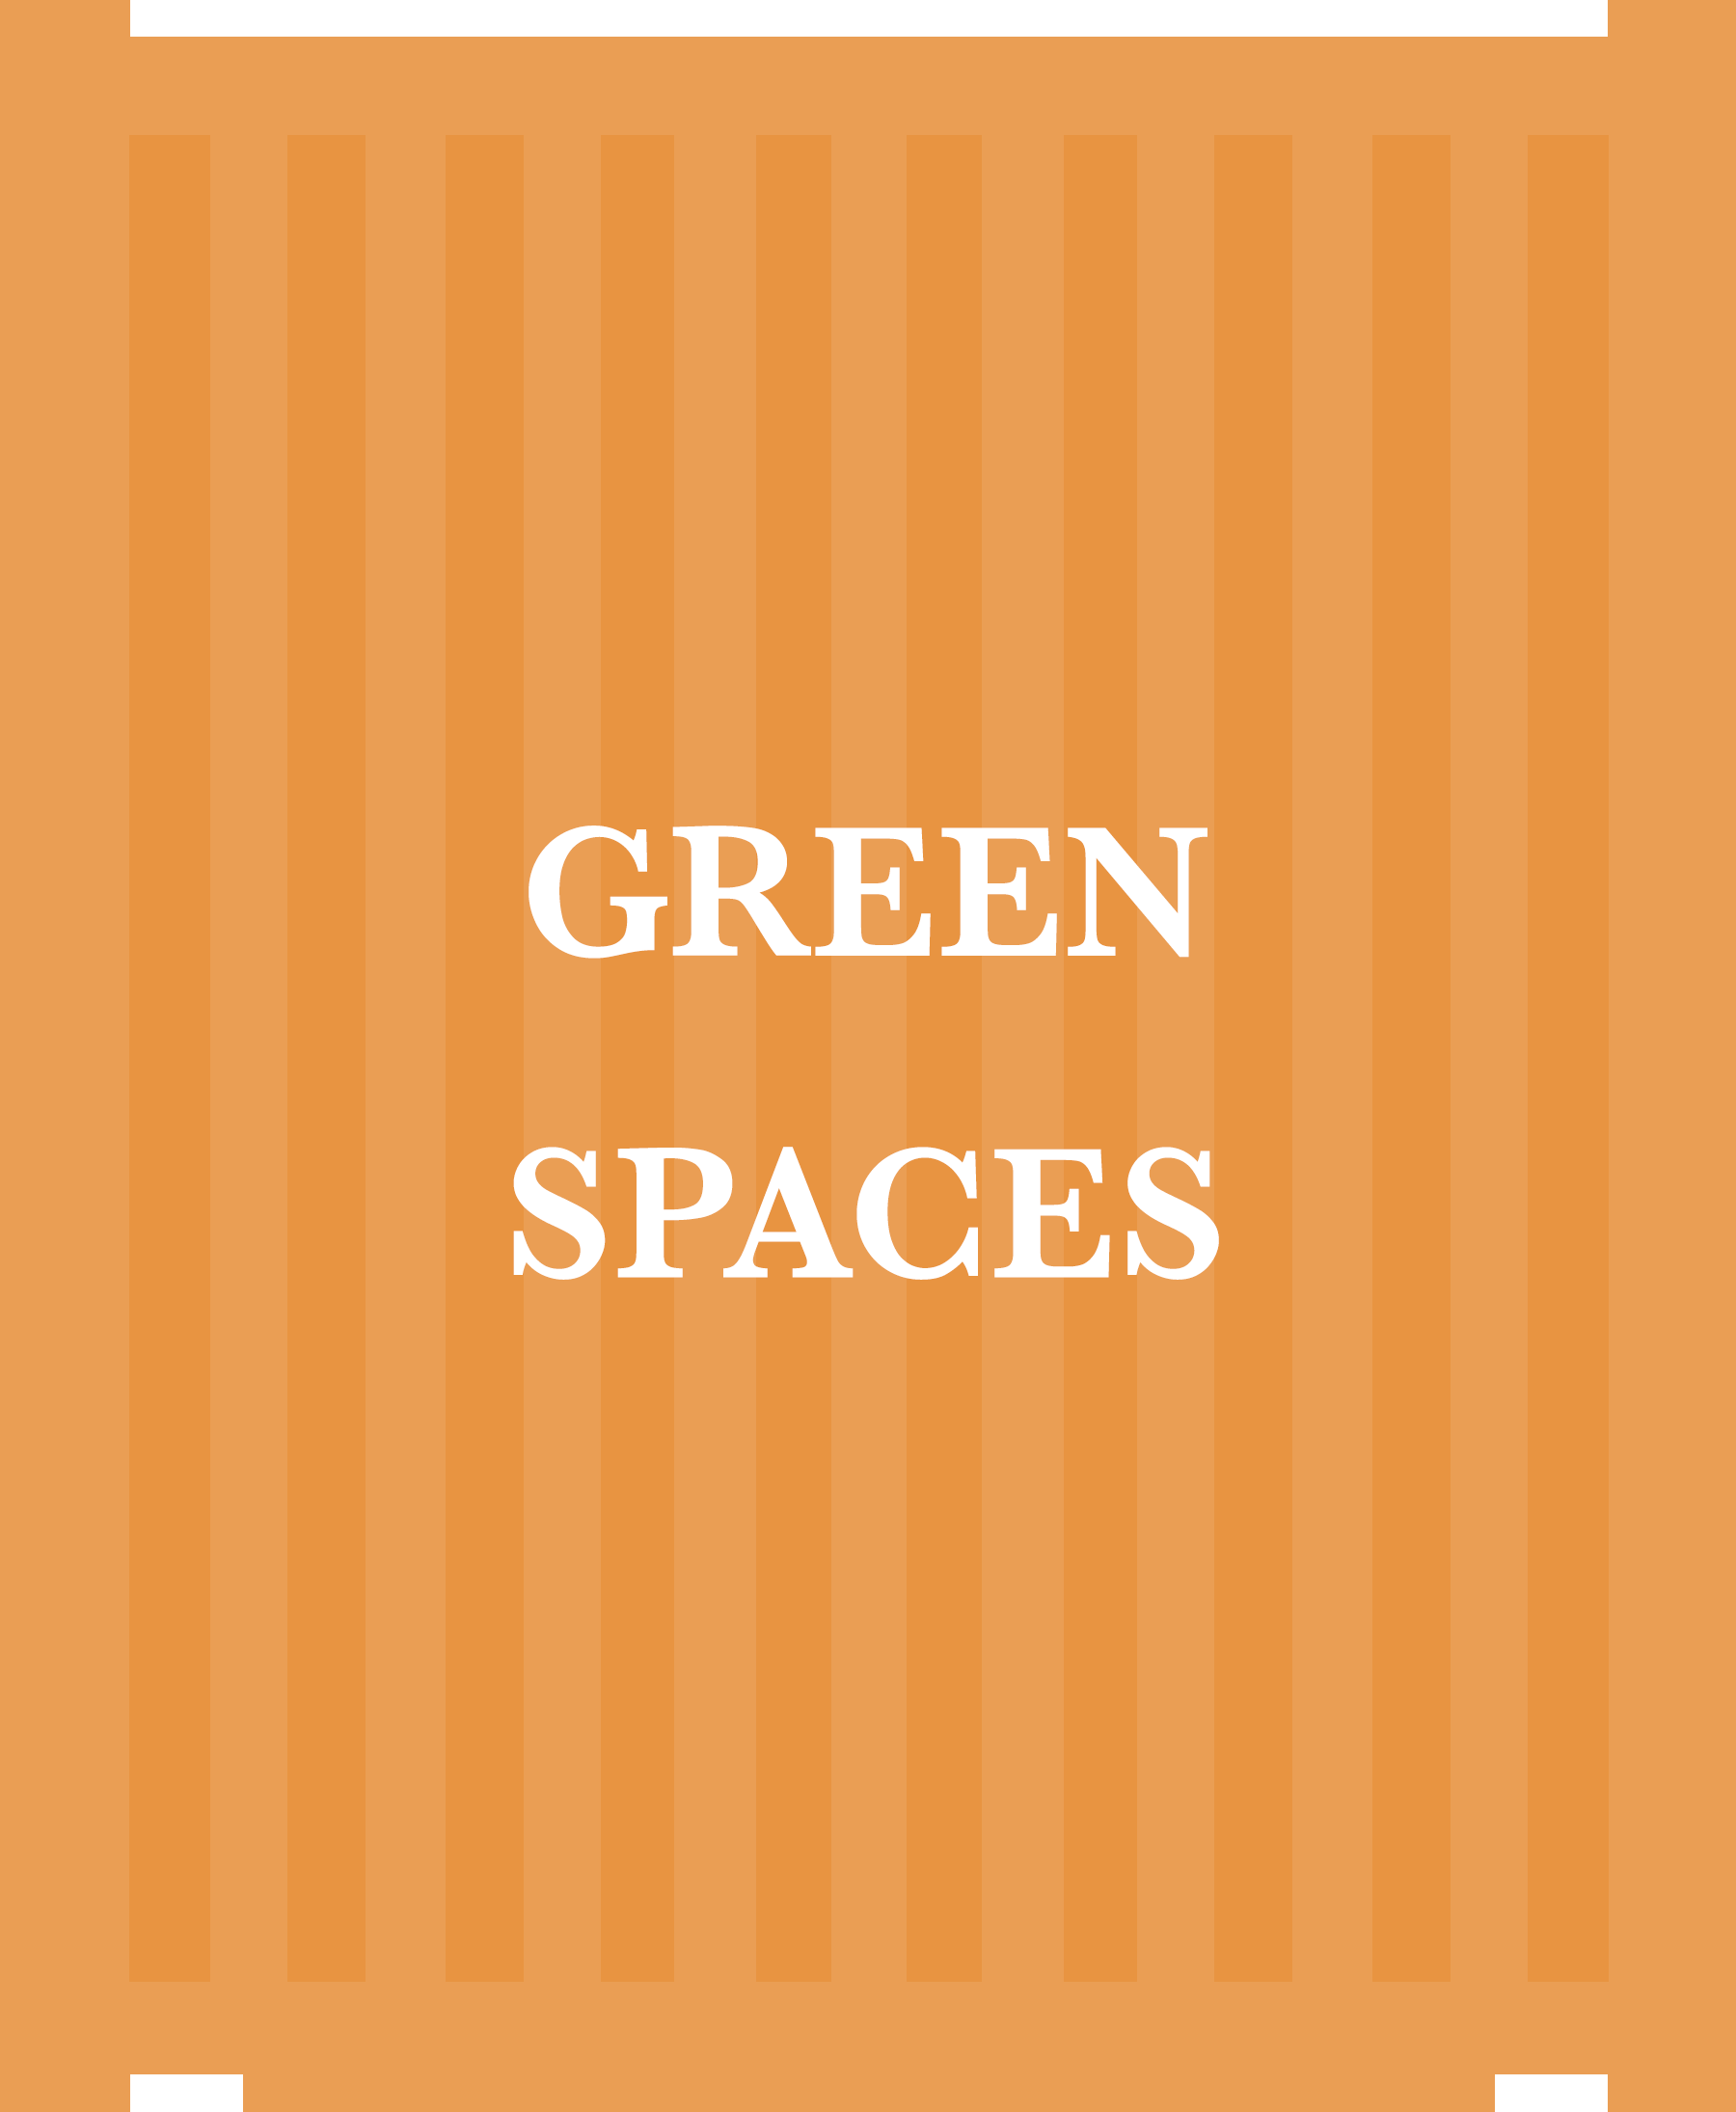 7GREEN SPACES